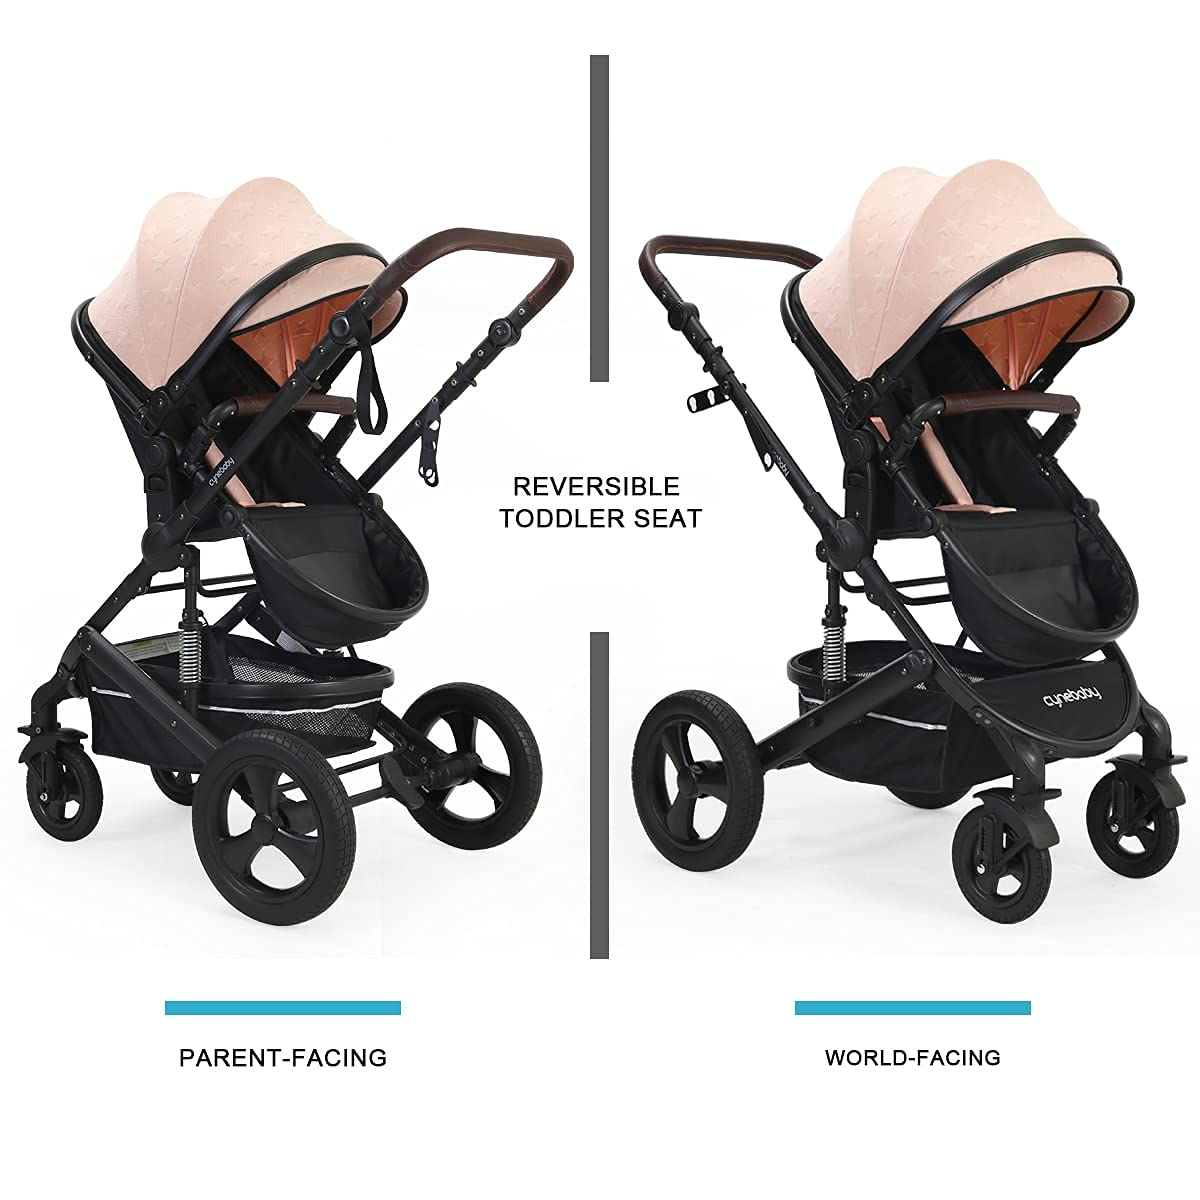 Newborn Infant Toddler Baby Stroller - Cynebaby 2 in 1 High Landscape Convertible Reversible Anti-Shock Bassinet Carriage Pram Stroller Add Cup Holder, Footmuff and Diaper Bag (Pink)